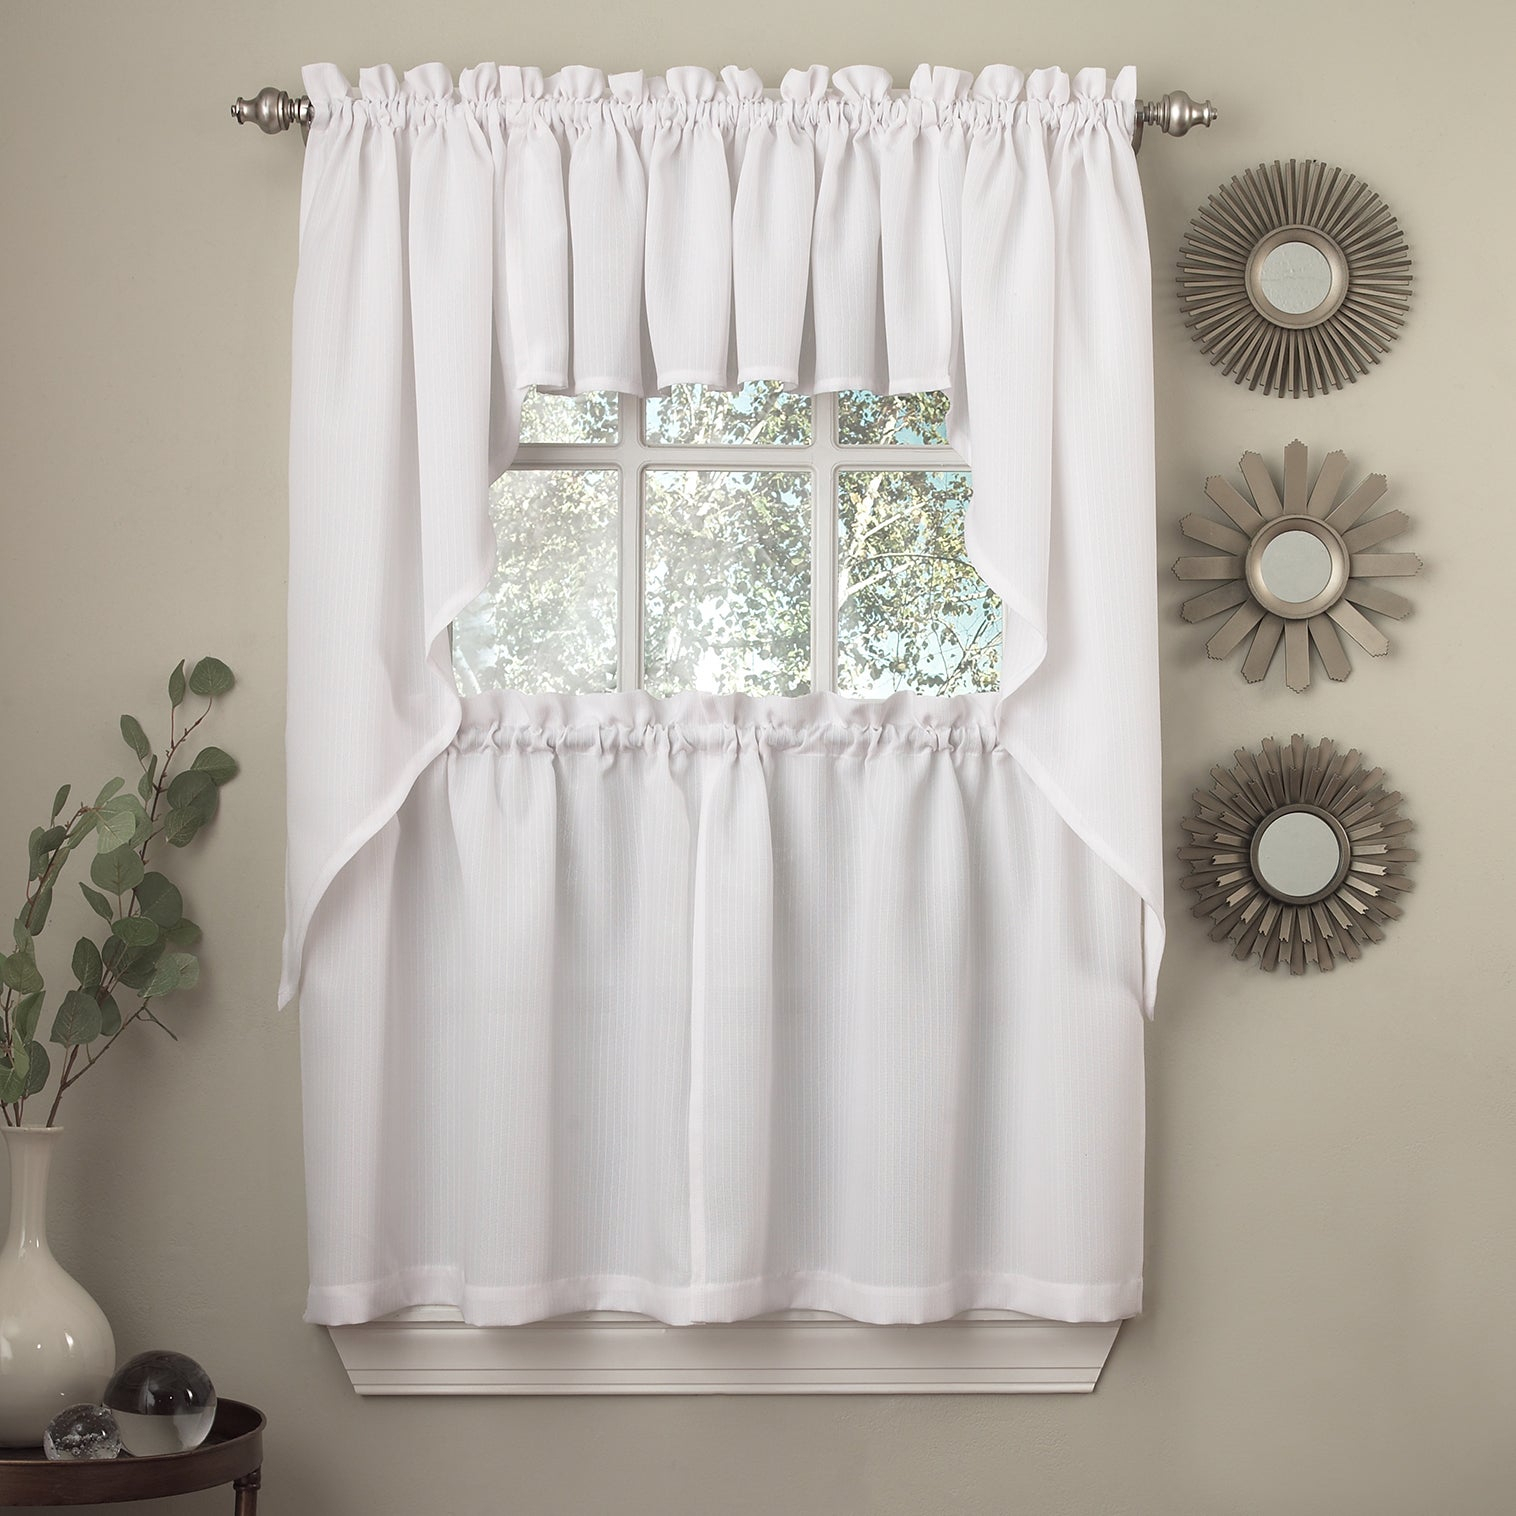 Opaque Ribcord Kitchen Curtain Pieces – Tiers/ Valances/ Swags With Glasgow Curtain Tier Sets (View 3 of 20)